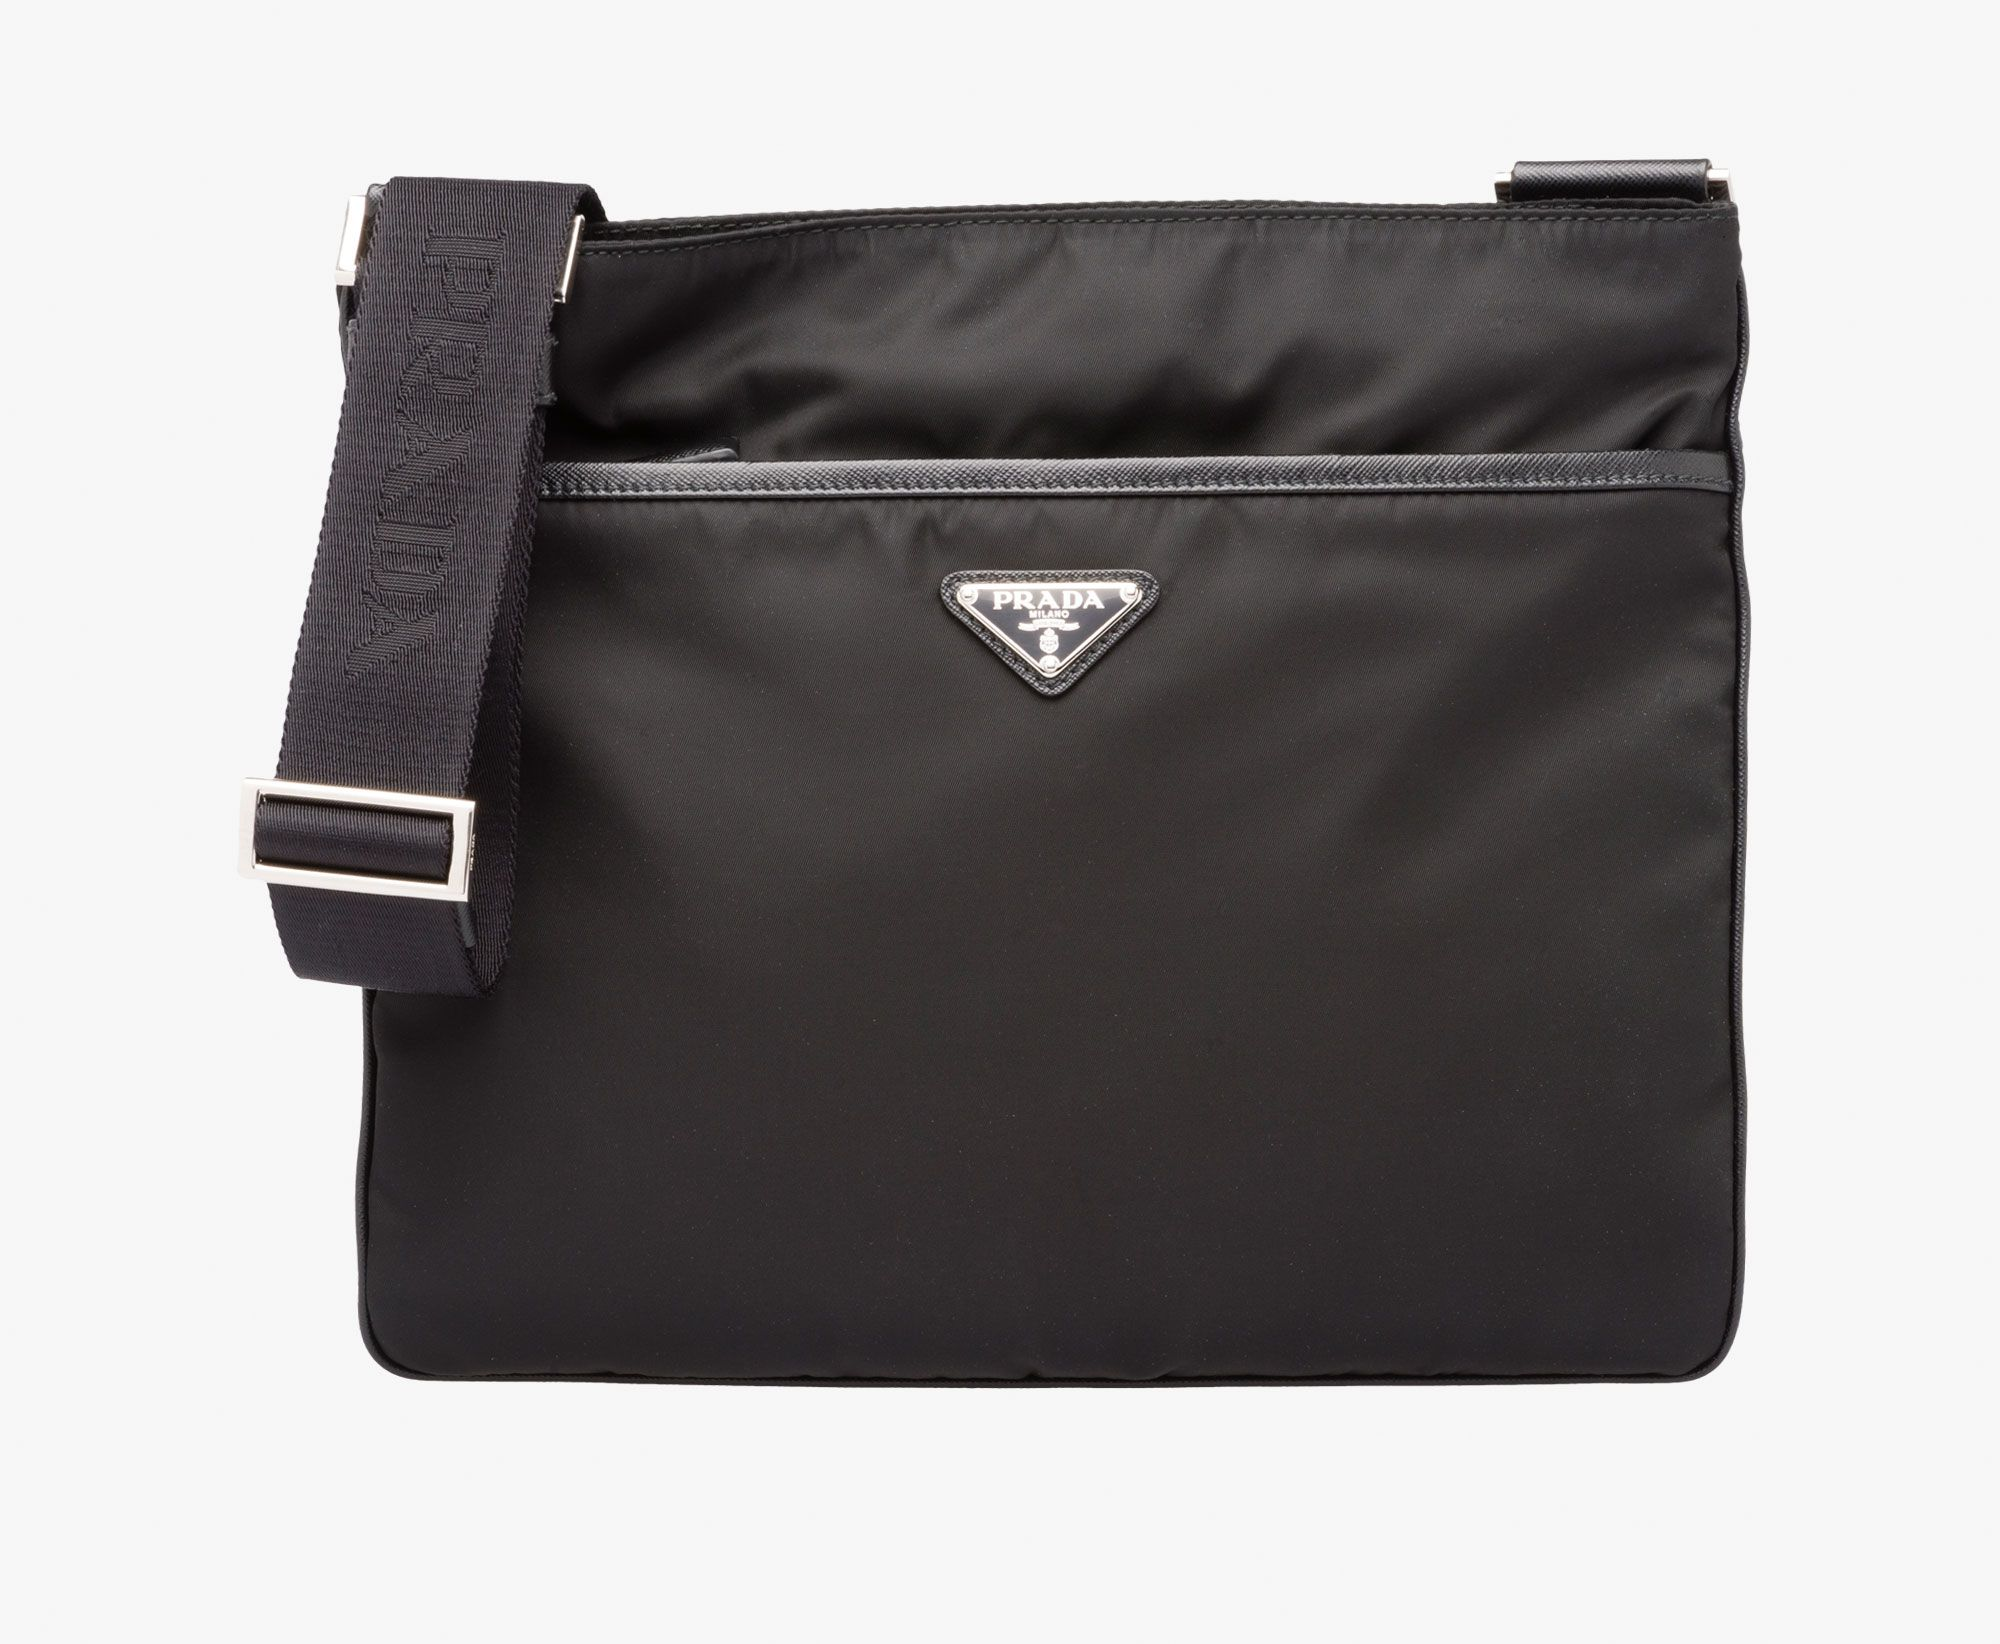 Prada Man - Messenger bag - Black - 2VH053_064_F0002_V_OOO ...